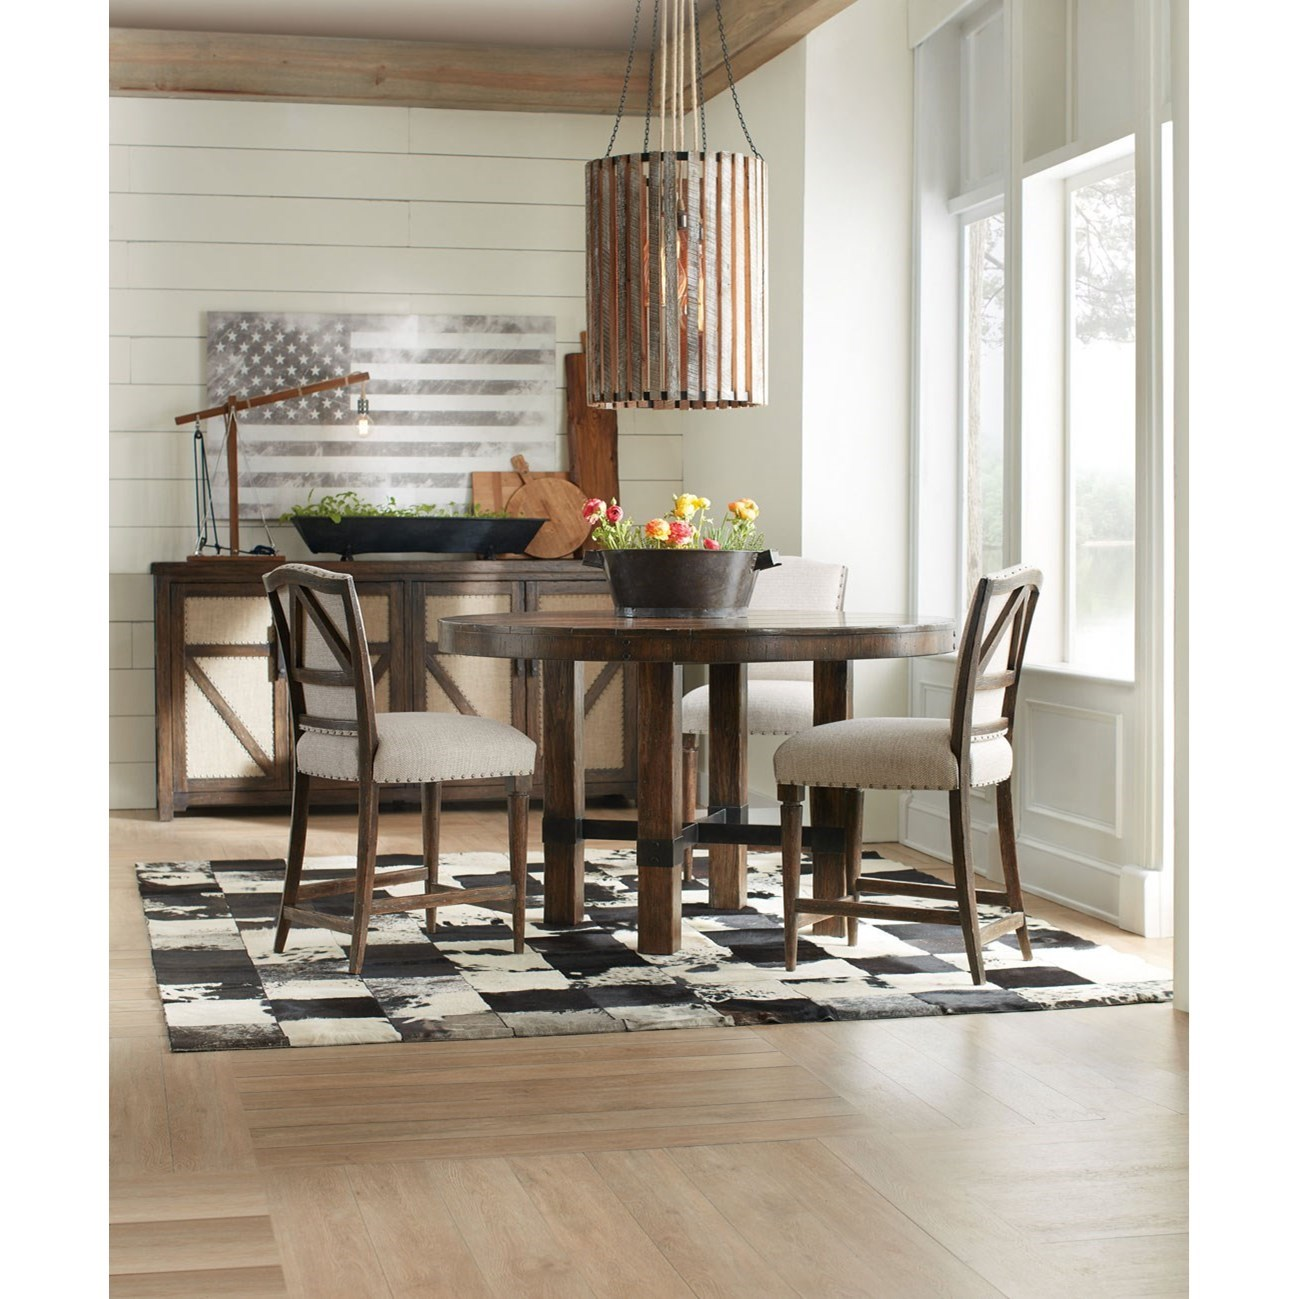 American Life - Roslyn County Round Dining Table and Counter Stool Set by Hooker Furniture at Suburban Furniture